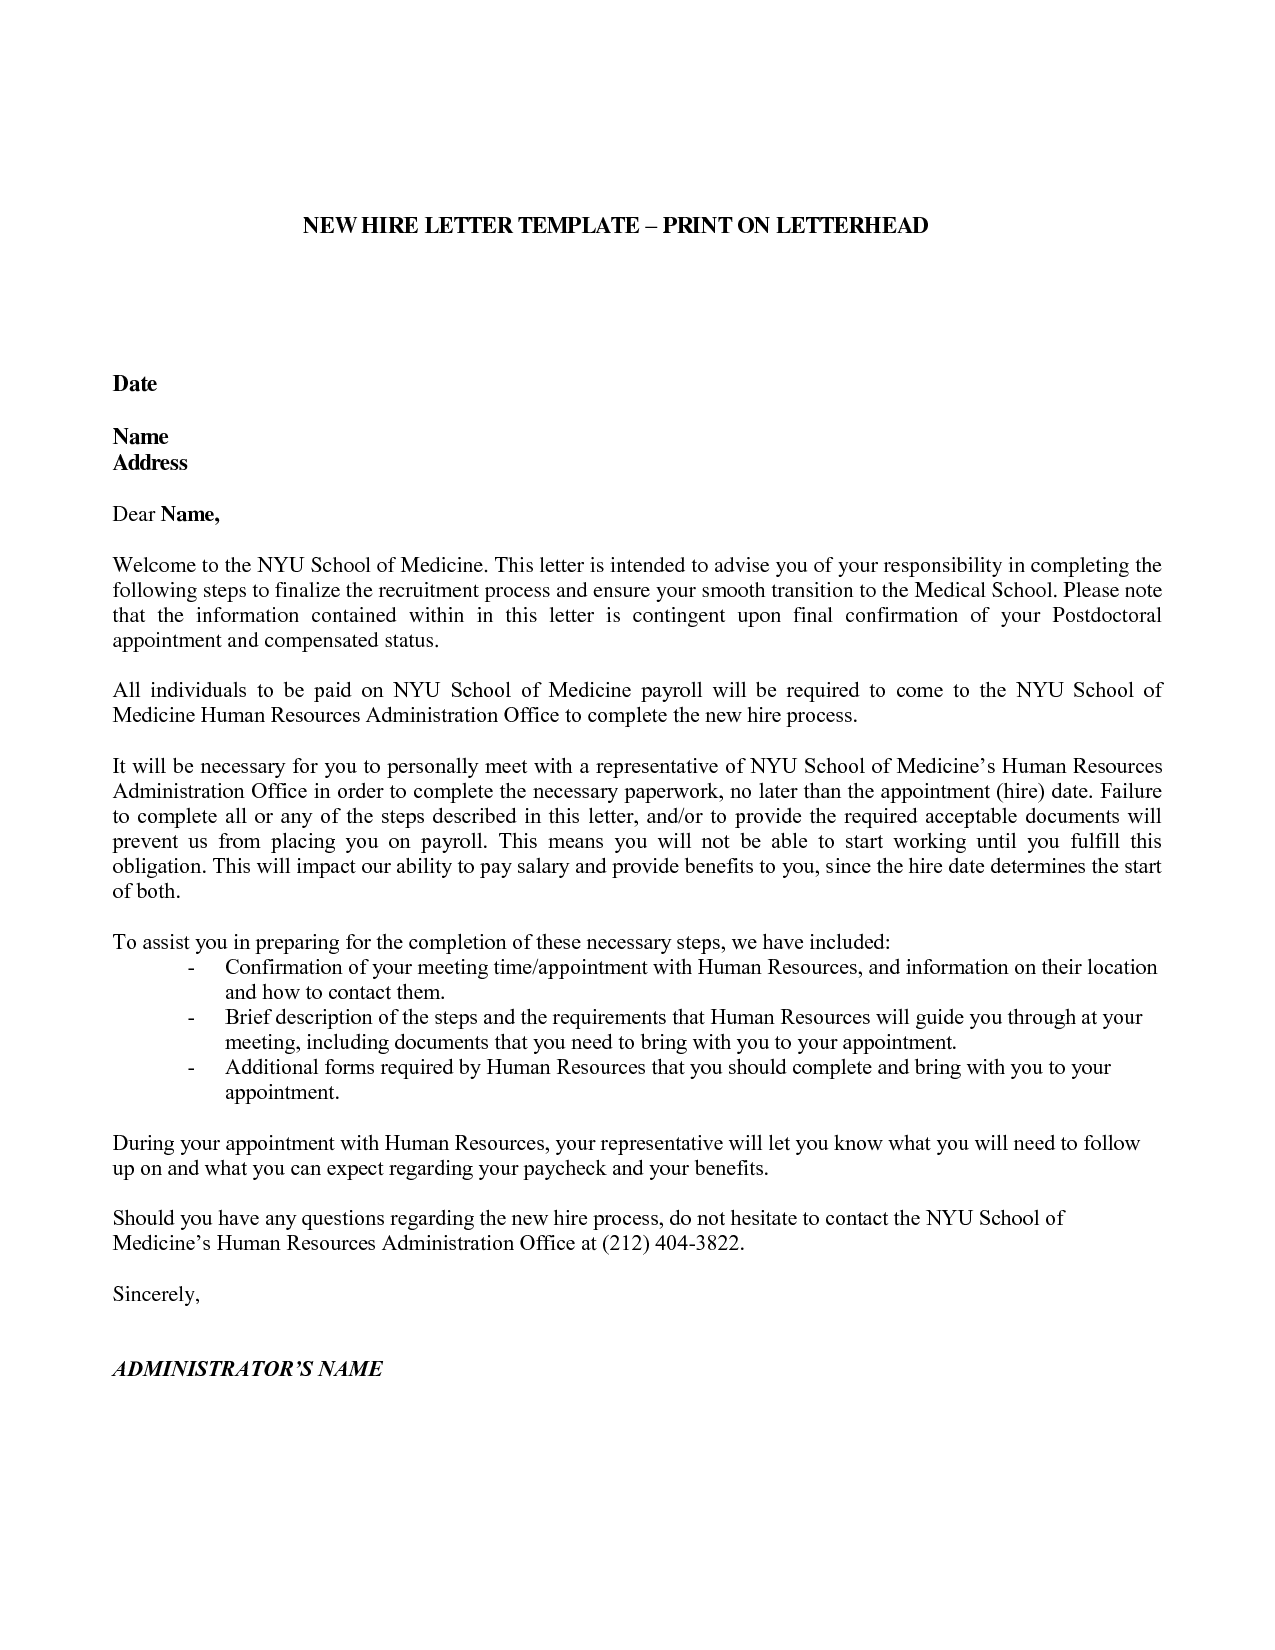 New Employee Letter Template Letter templates